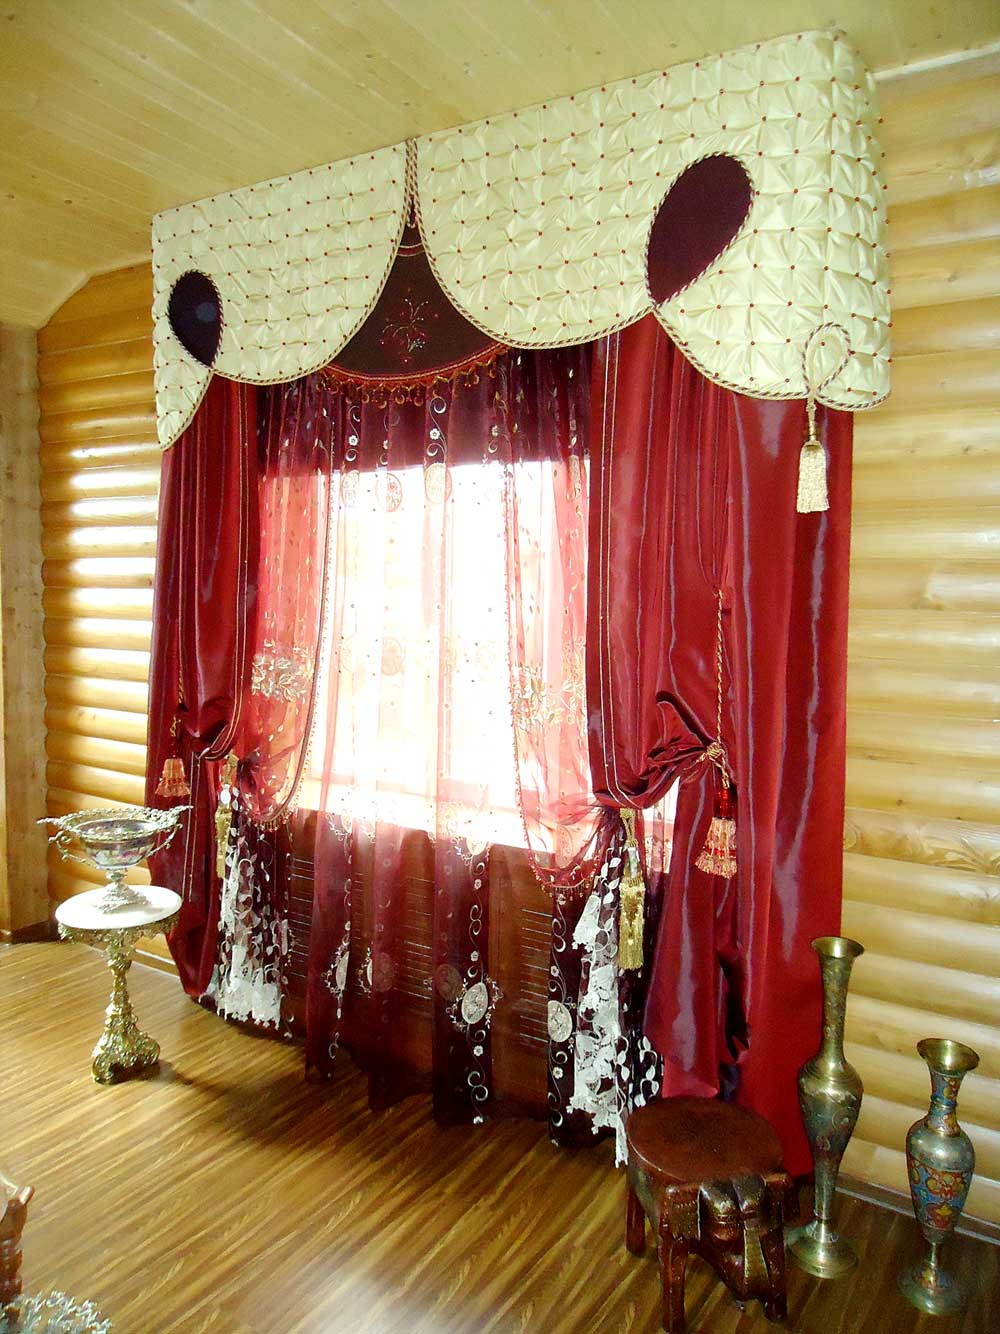 Curtains in log cabin